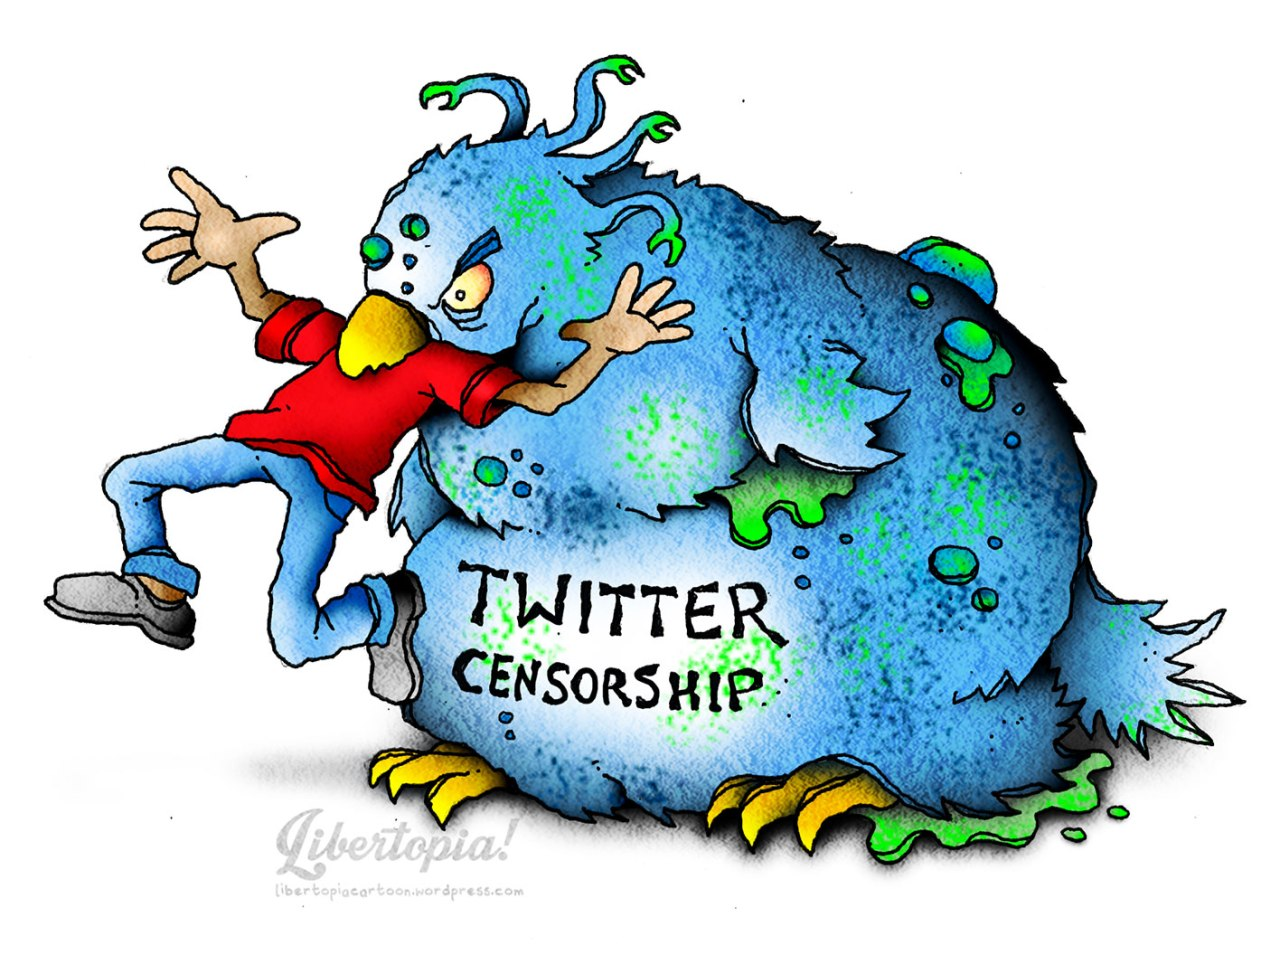 Censorship in Twitter